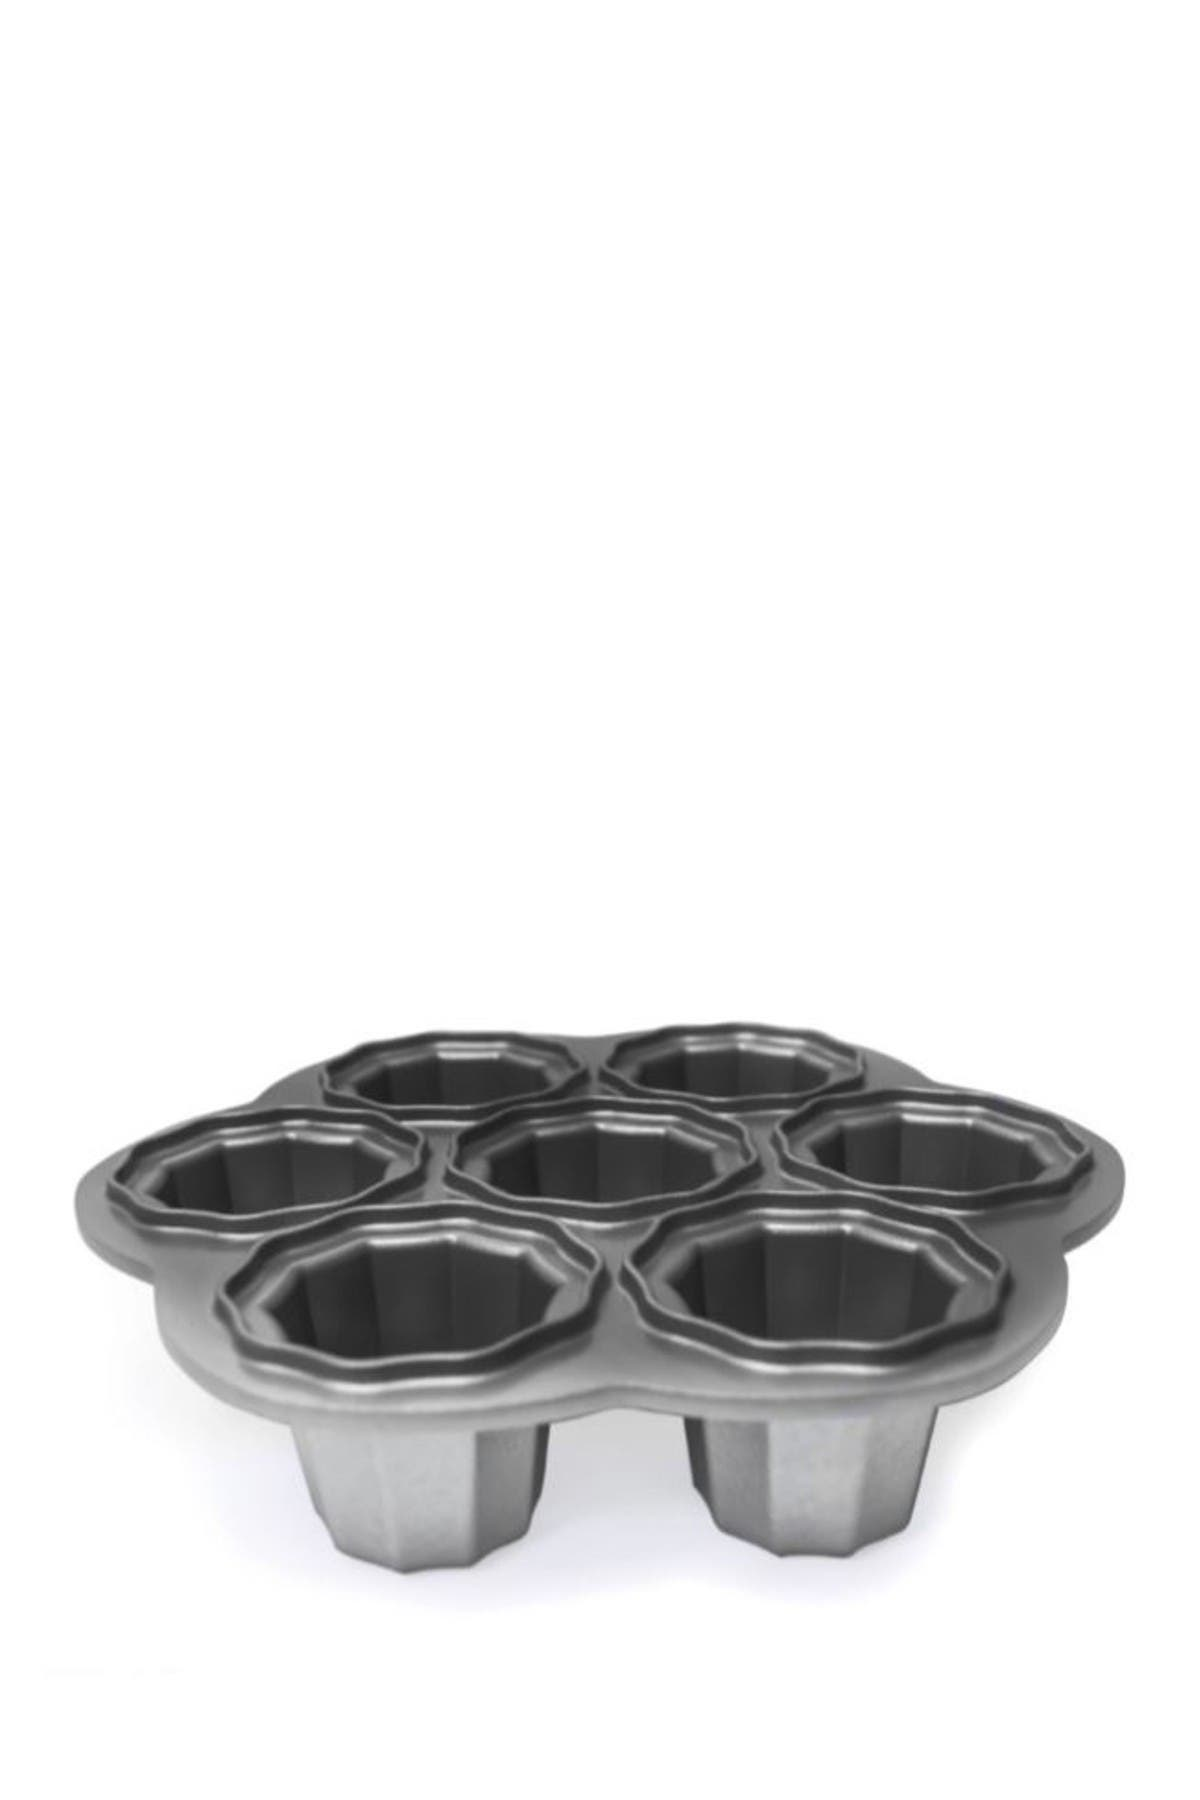 Image of Nordic Ware Cookies & Cream Baking Pan